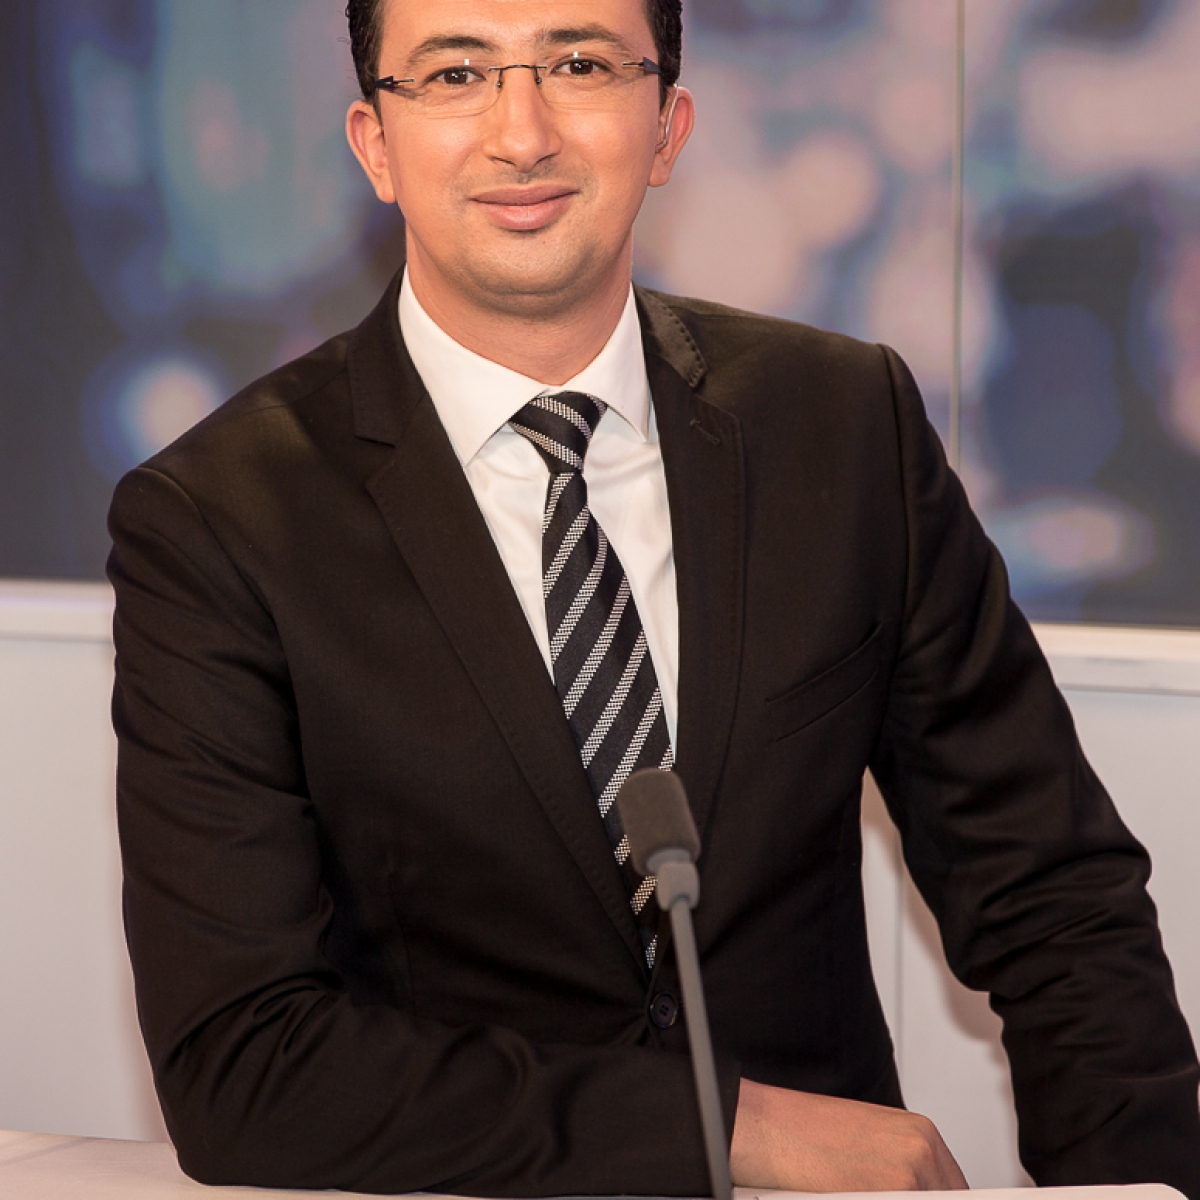 Rafik Rahali , photo , marwan moussa, france 24, مروان موسى